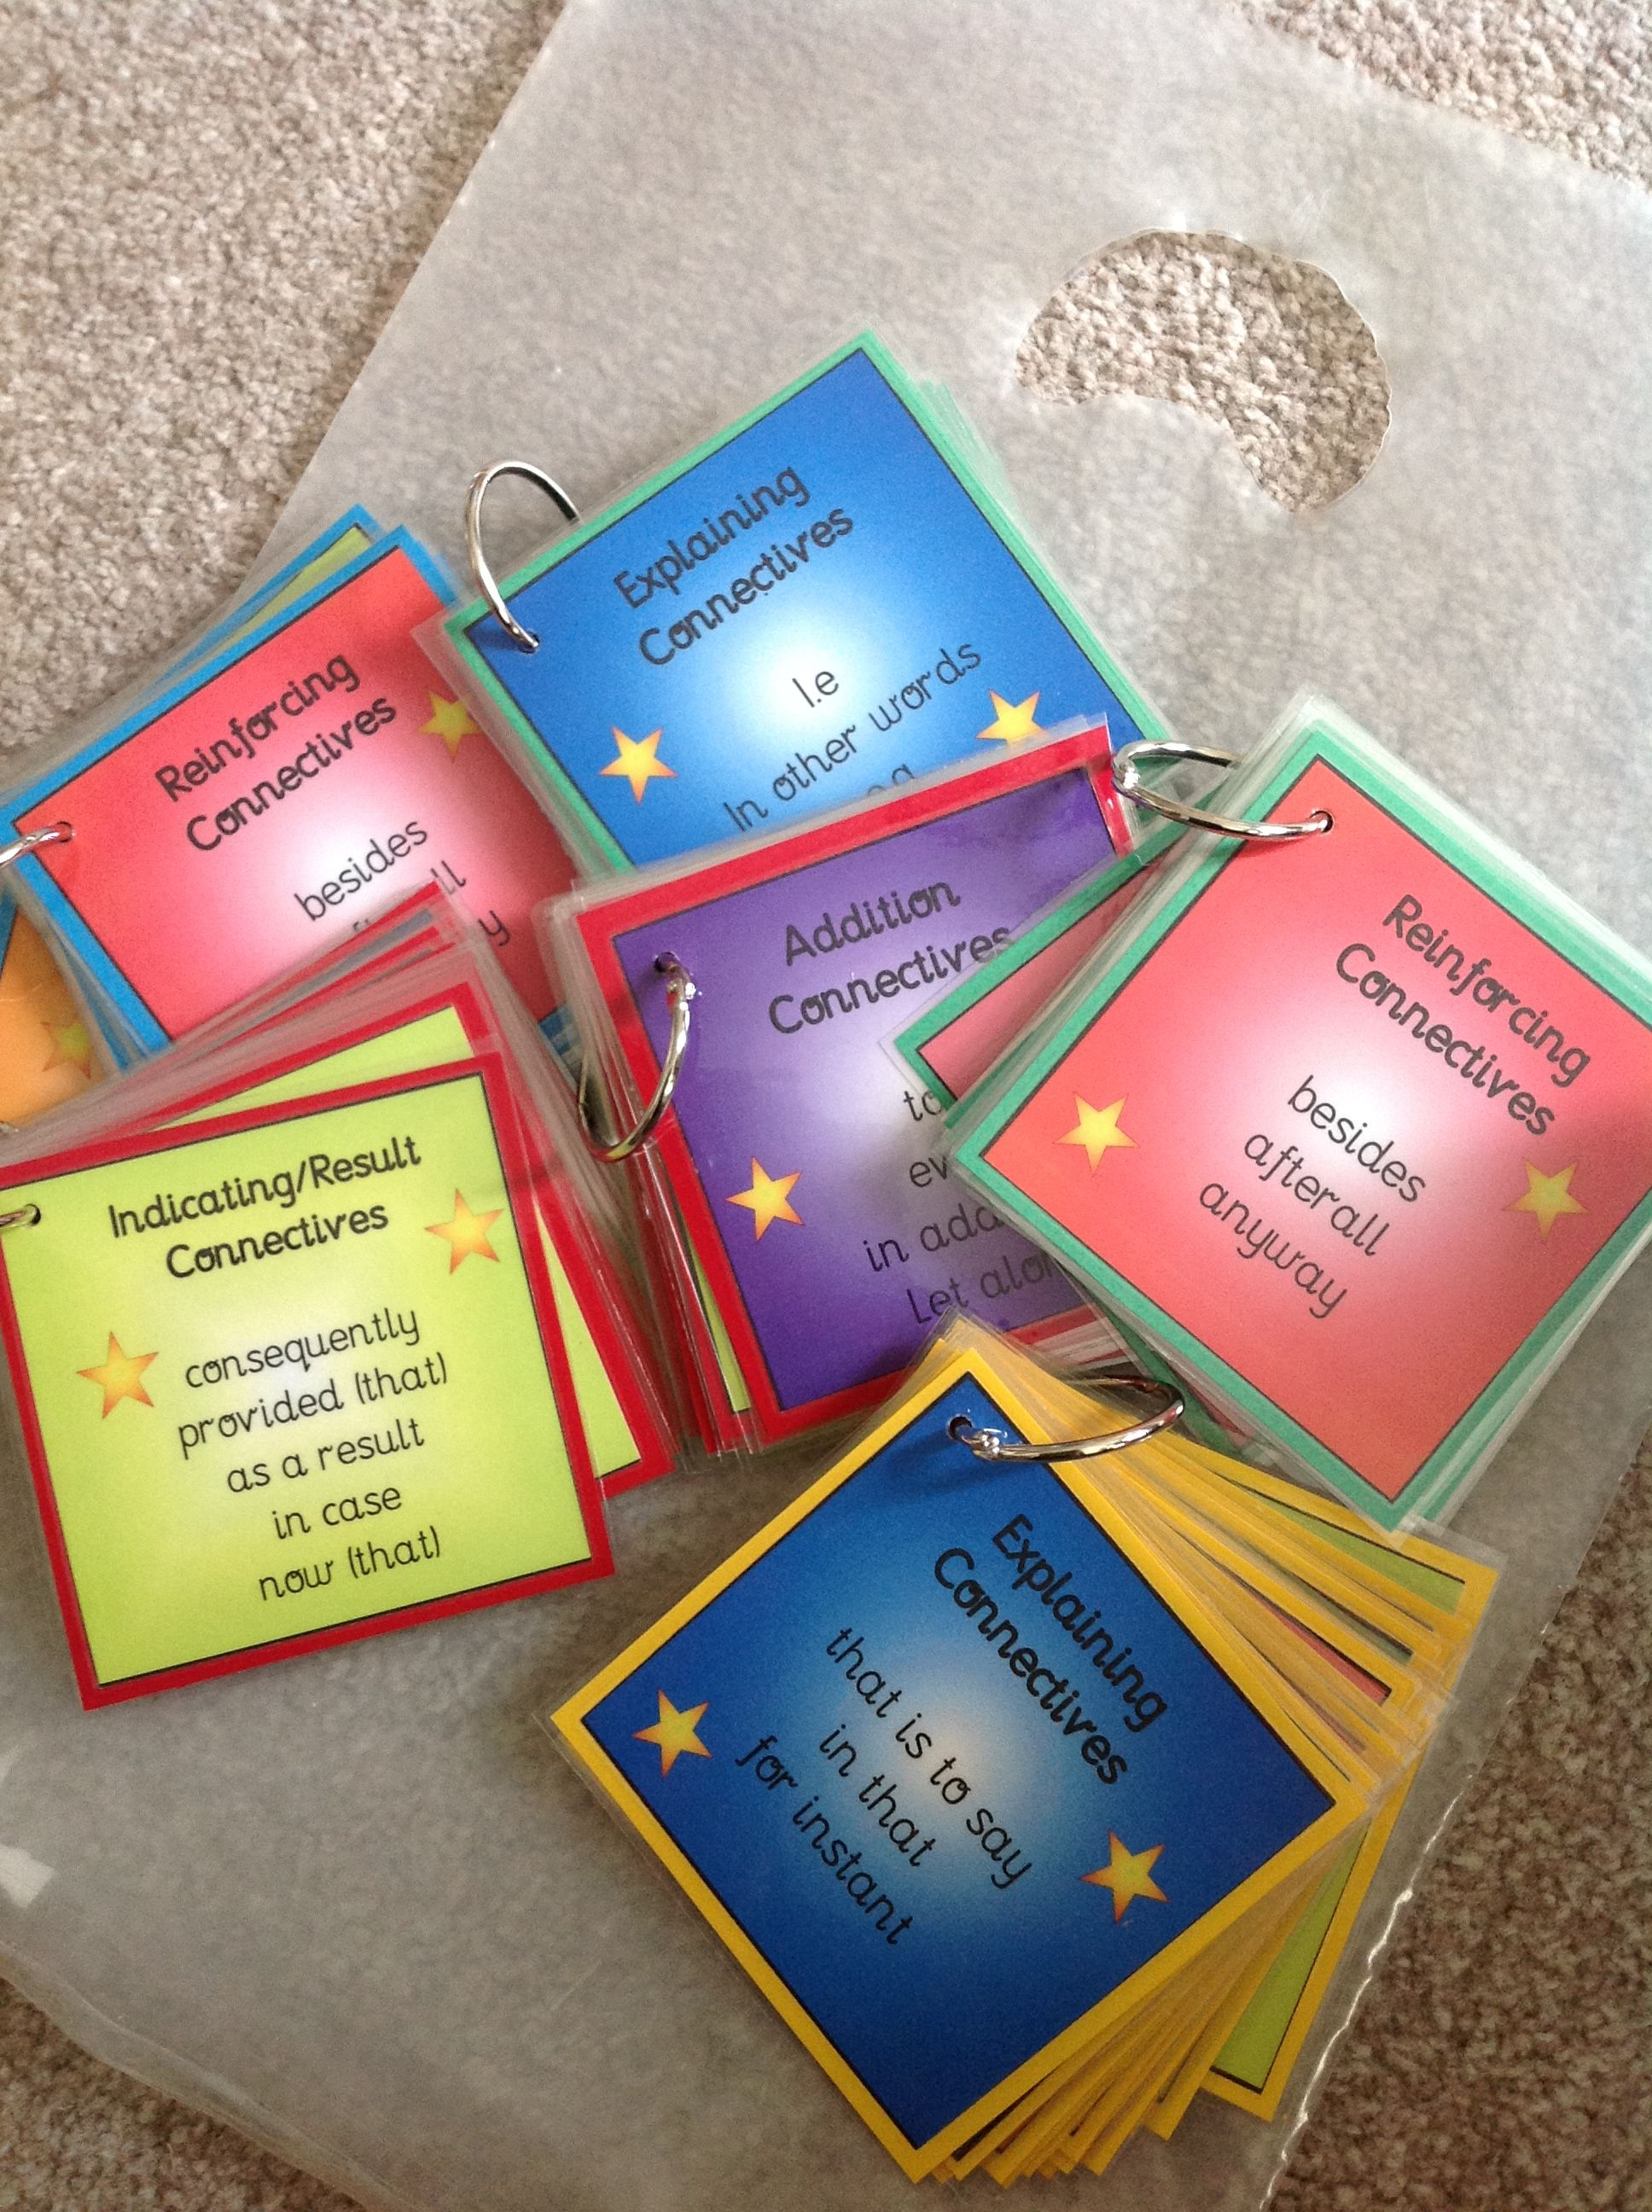 Make Your Own Connective Keyrings To Support Pupils In Their Writing